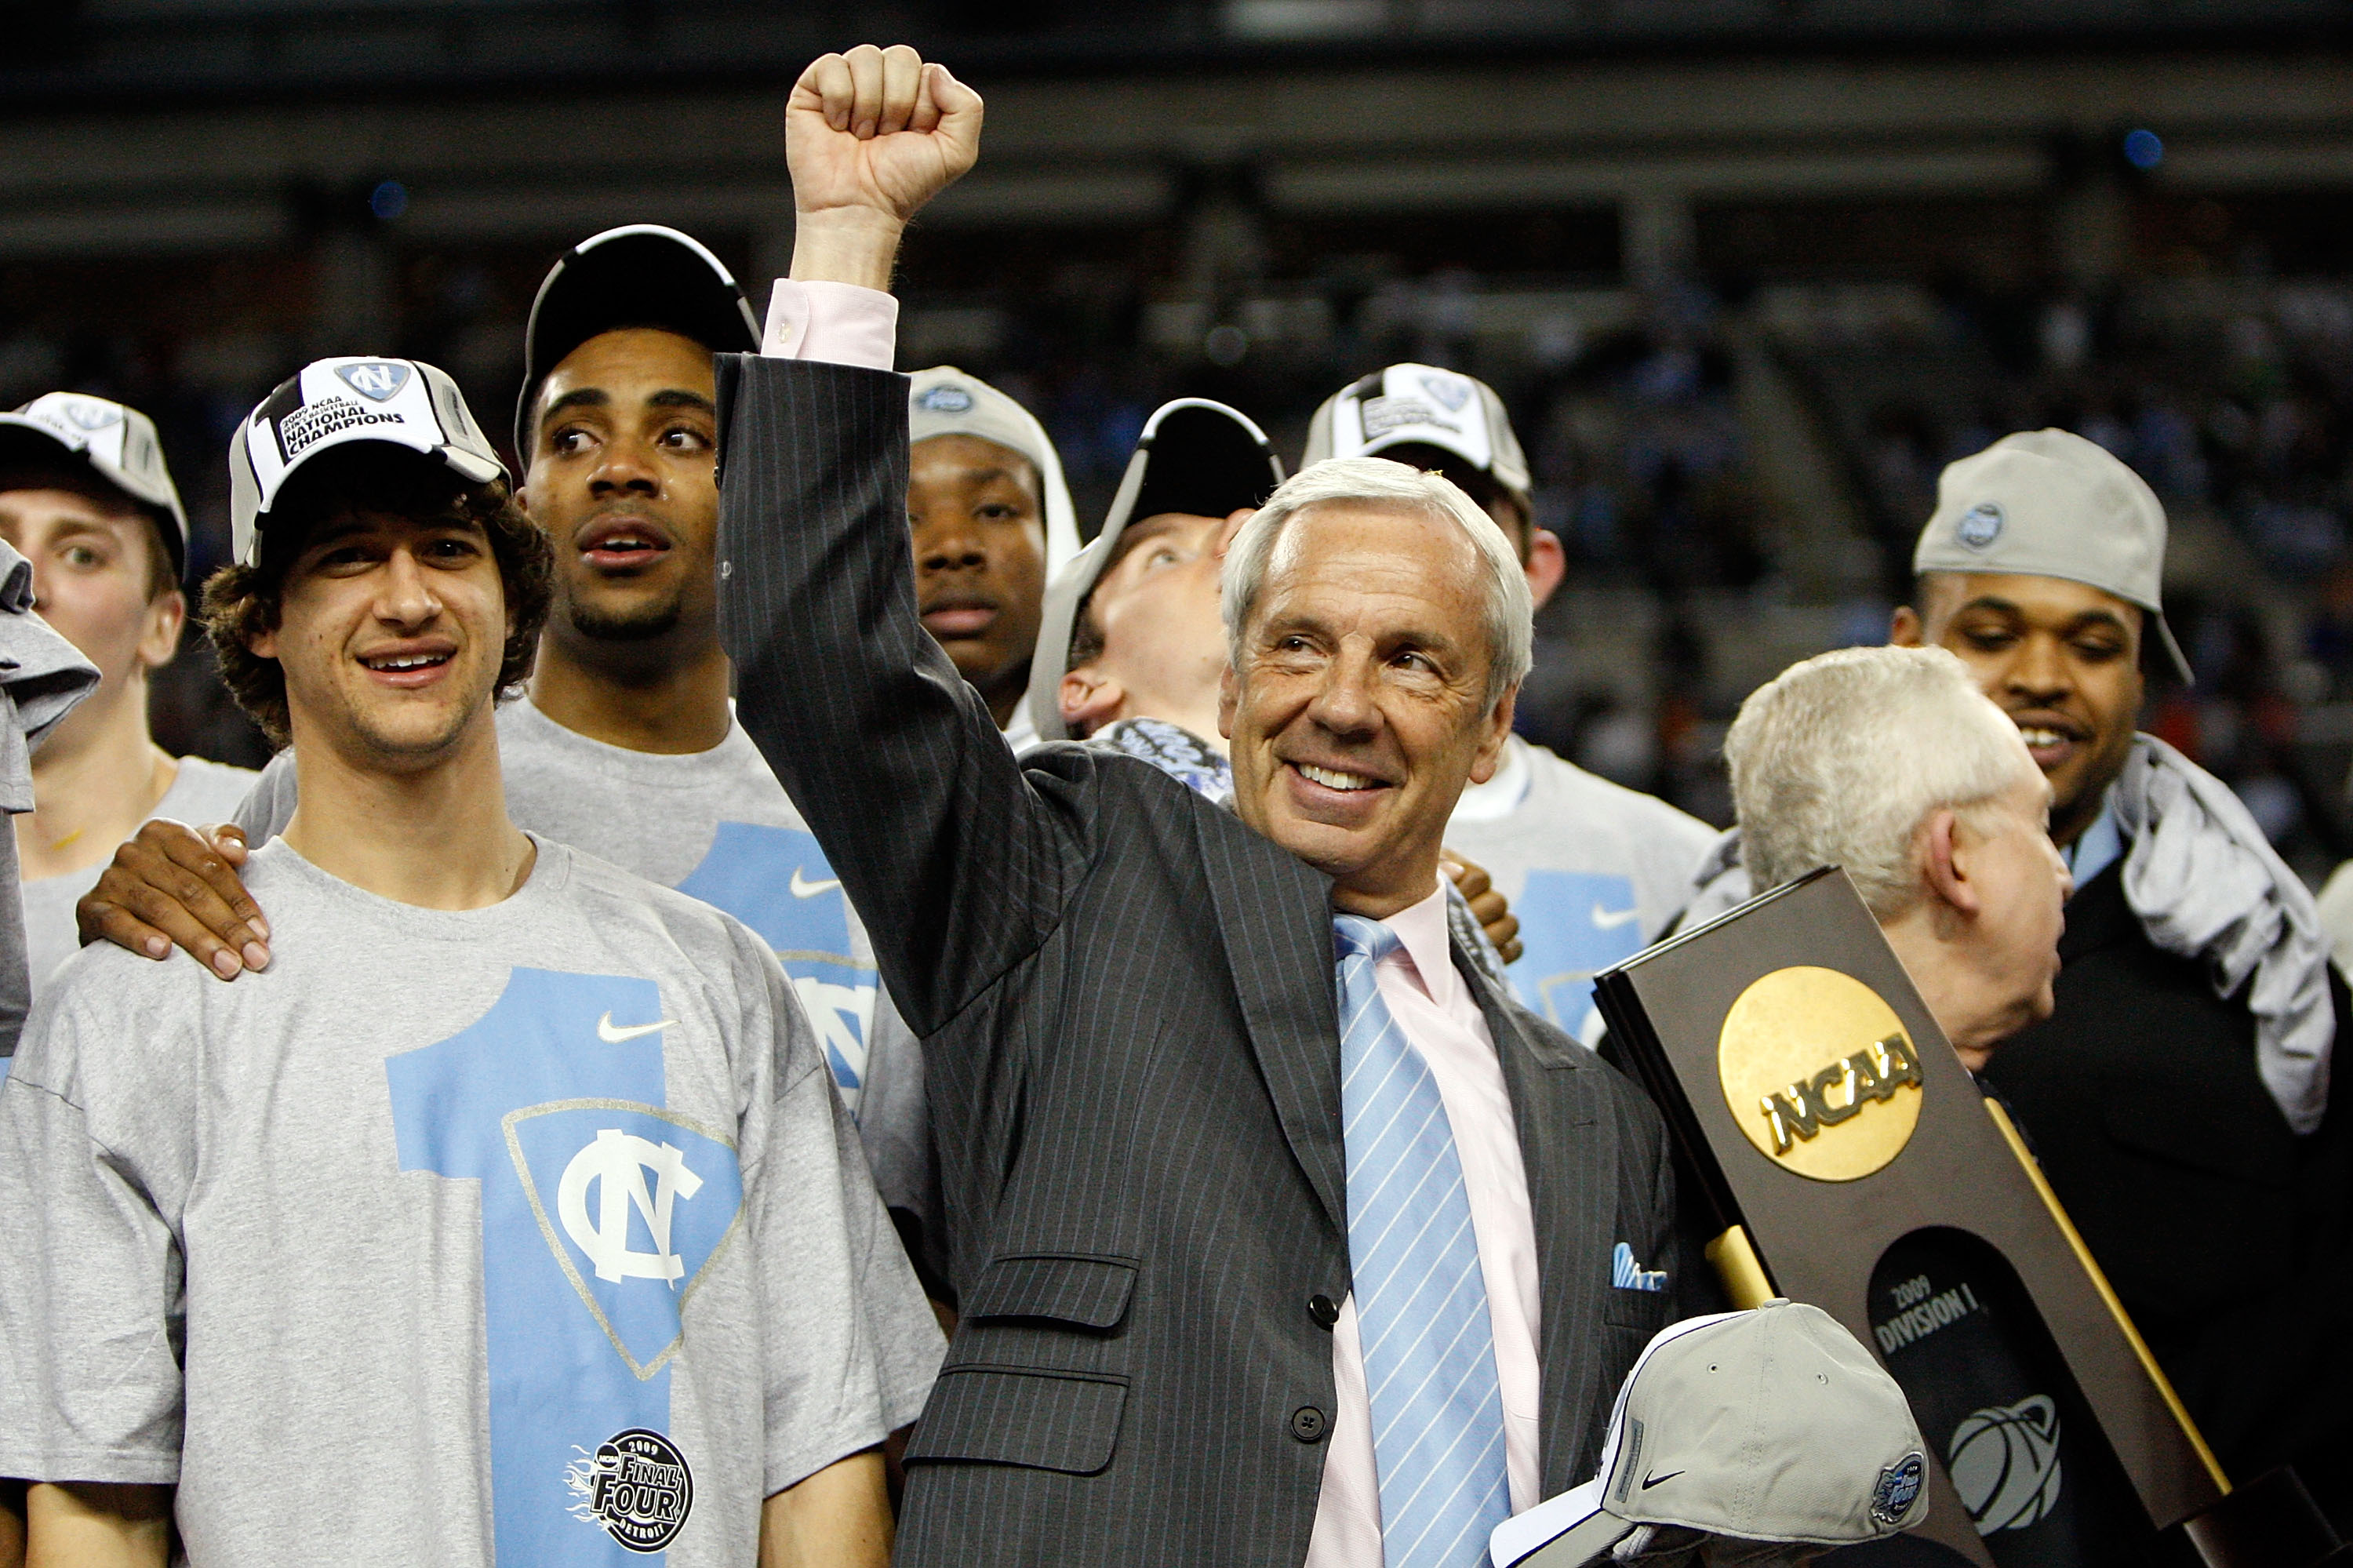 Head coach Roy Williams and the North Carolina Tar Heels celebrates after winning the NCAA Division I Men's Basketball National Championship in 2009.